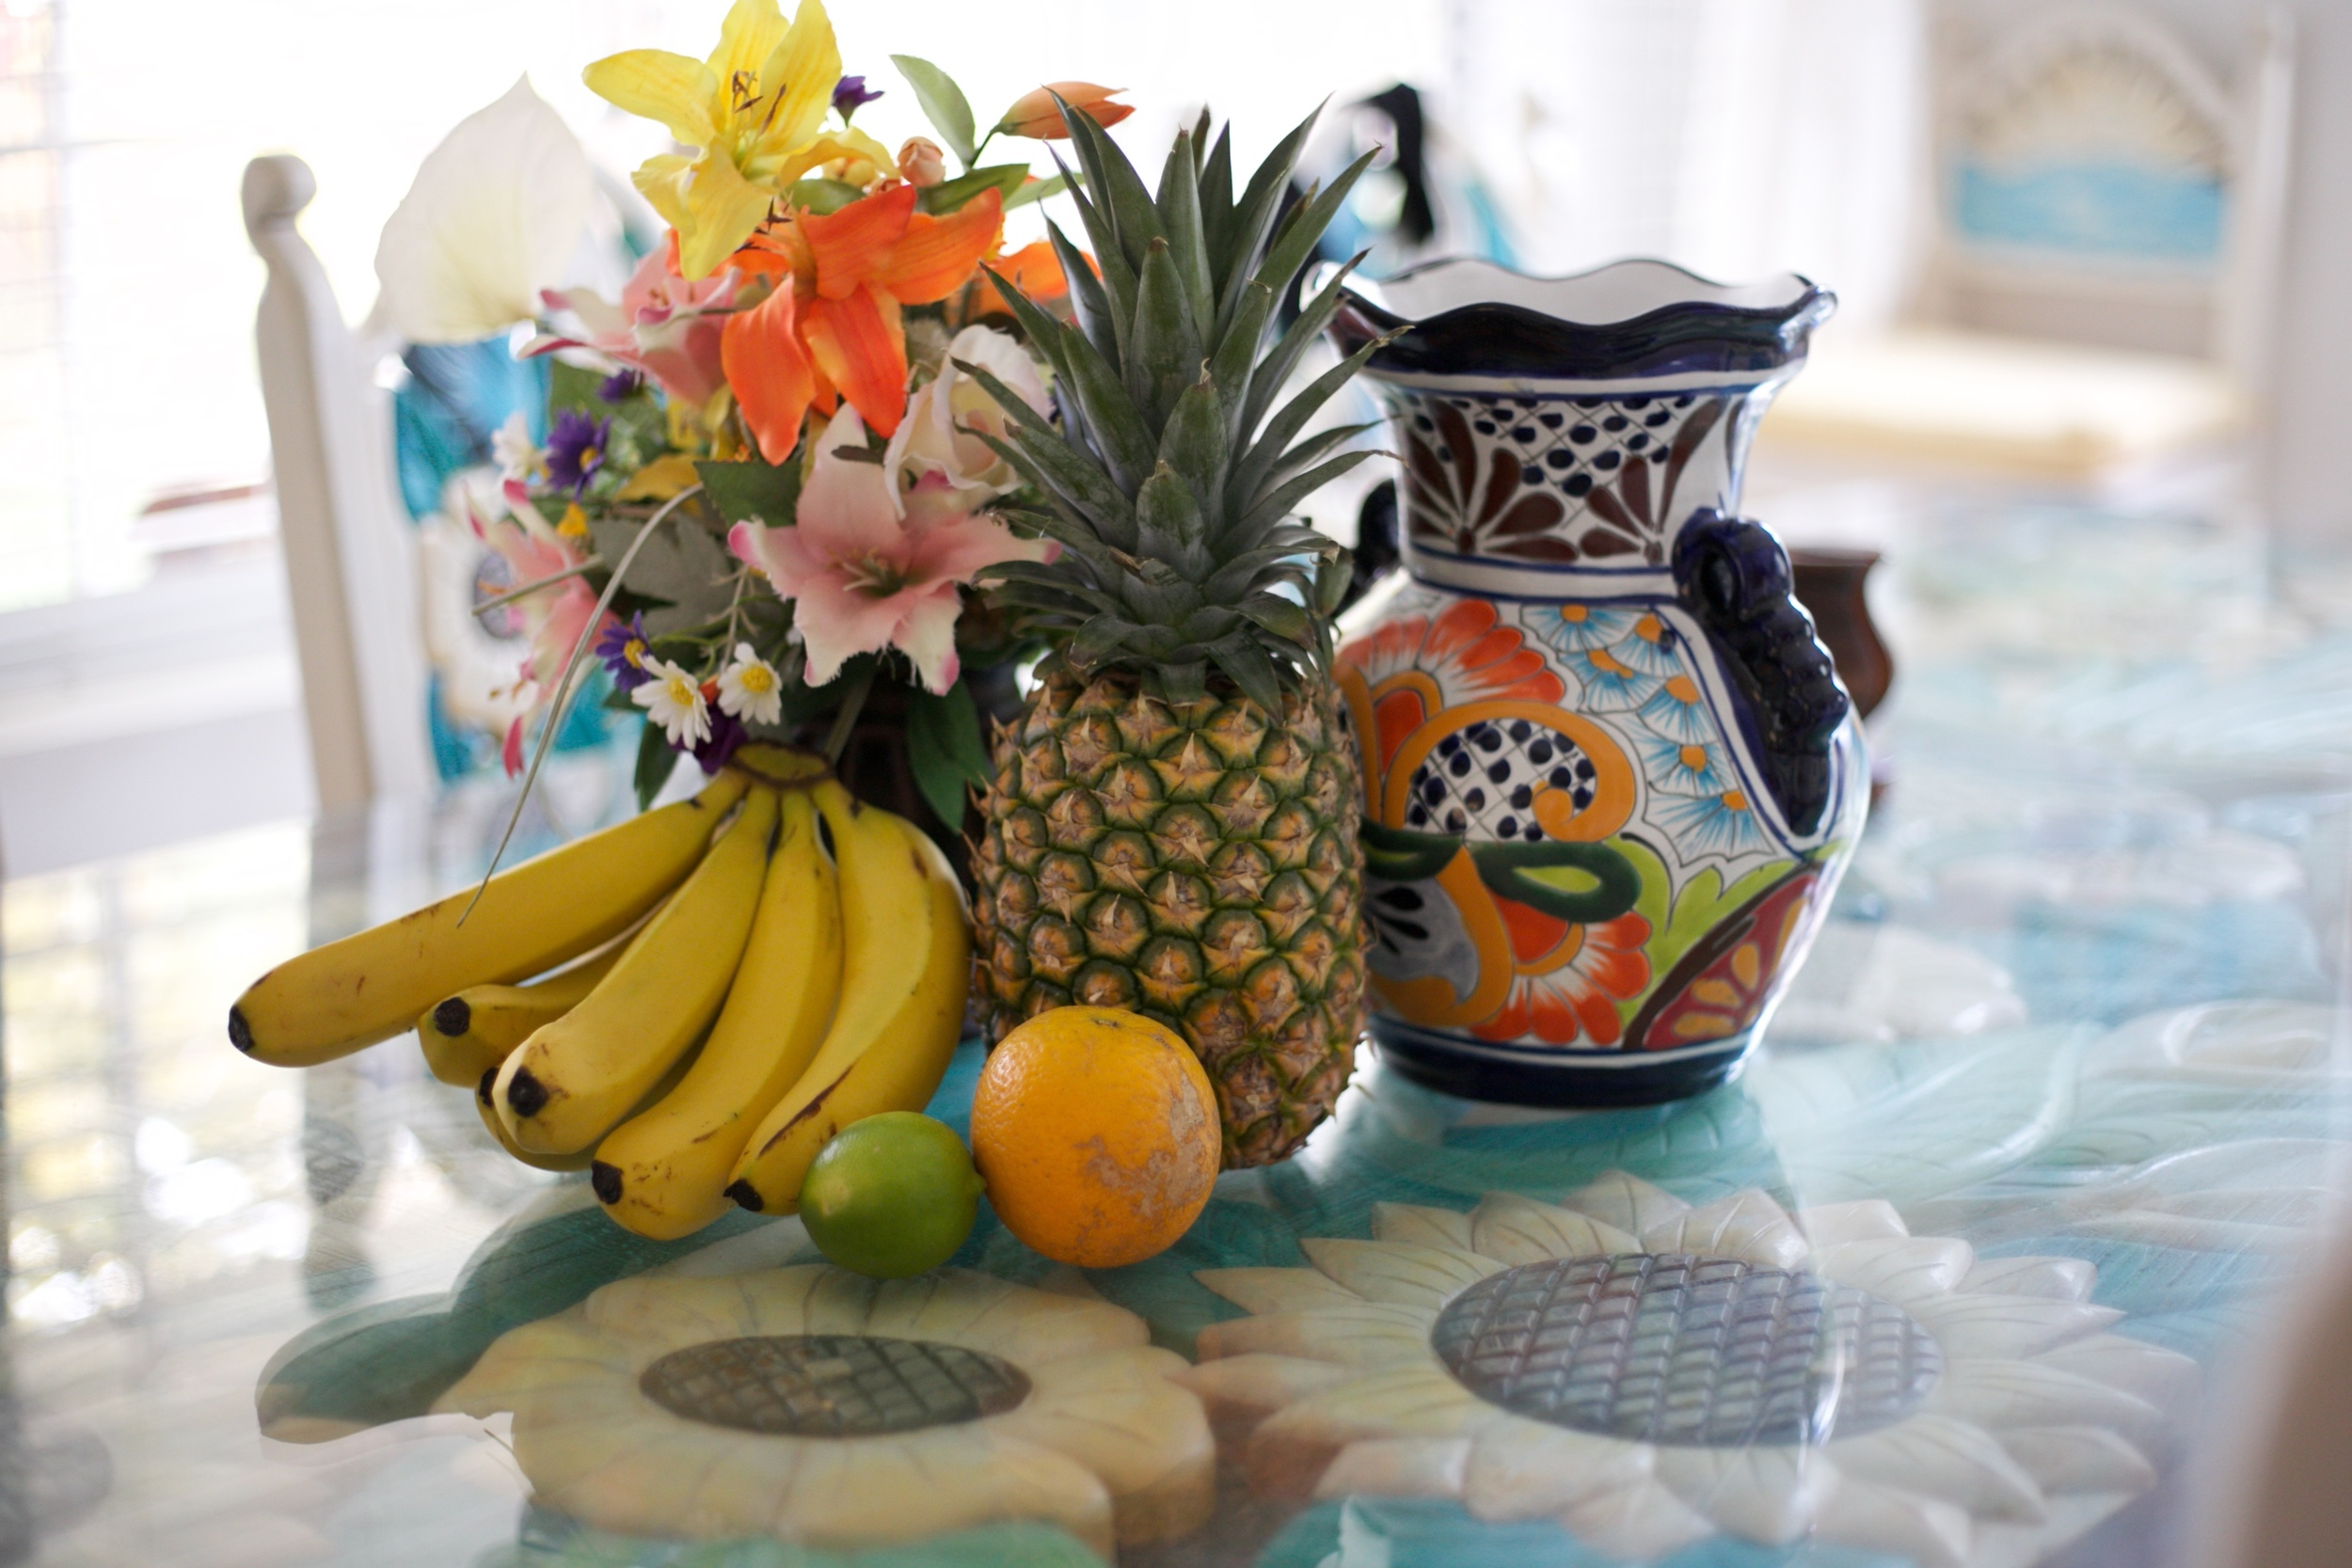 Fresh fruit in Mexico - pineapples and bananas.